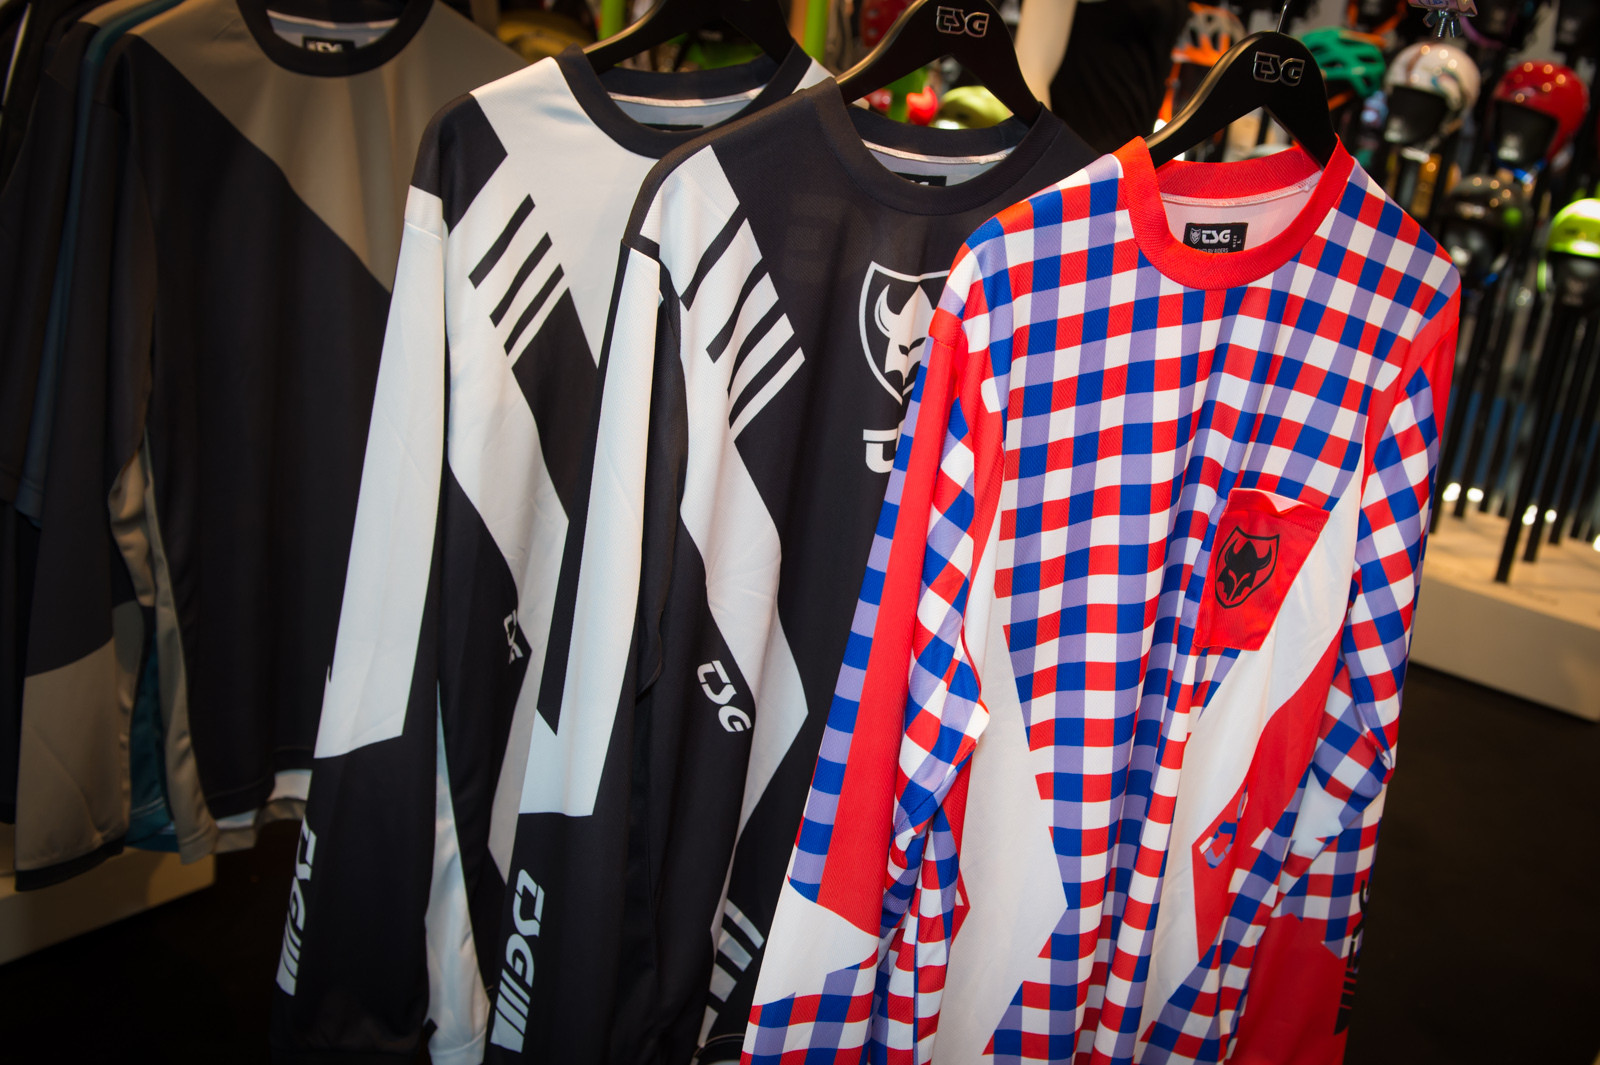 TSG Race Jersey - 2014 Mountain Bike Apparel & Protection at Eurobike 2013 - Mountain Biking Pictures - Vital MTB